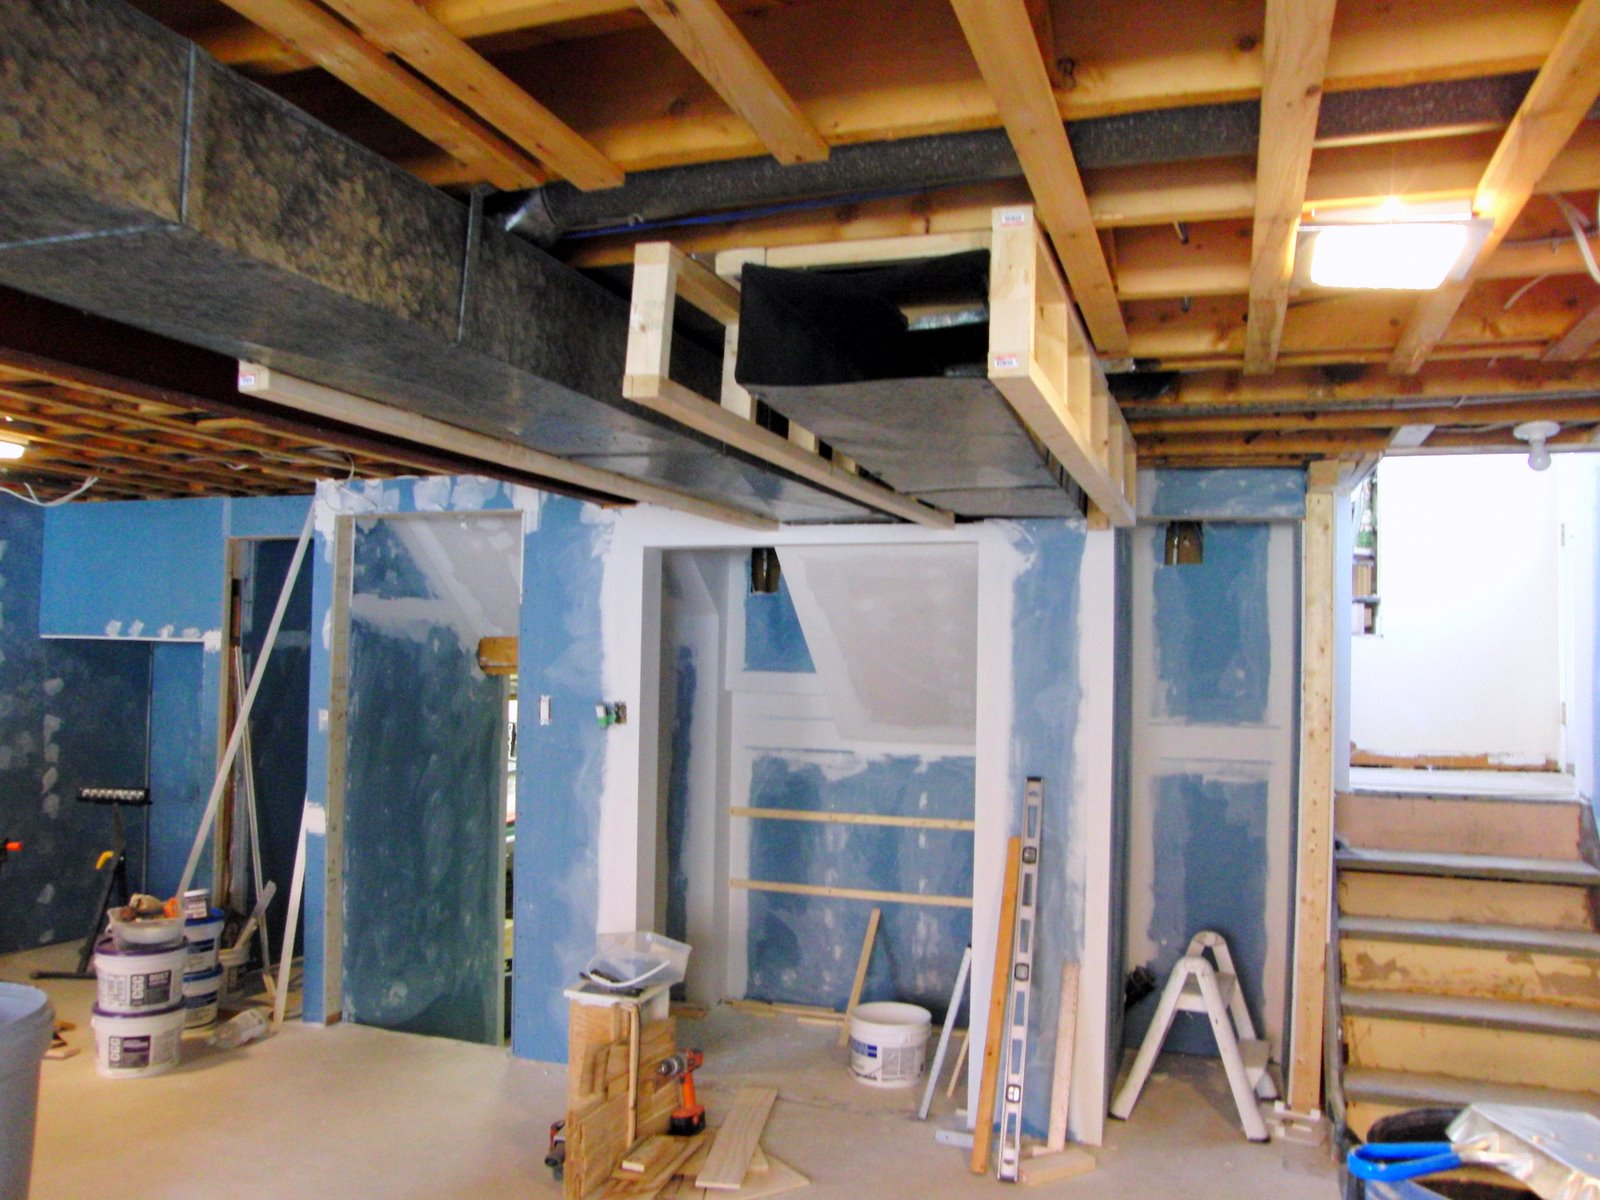 framing around the ductwork and also the shelf supports that i added